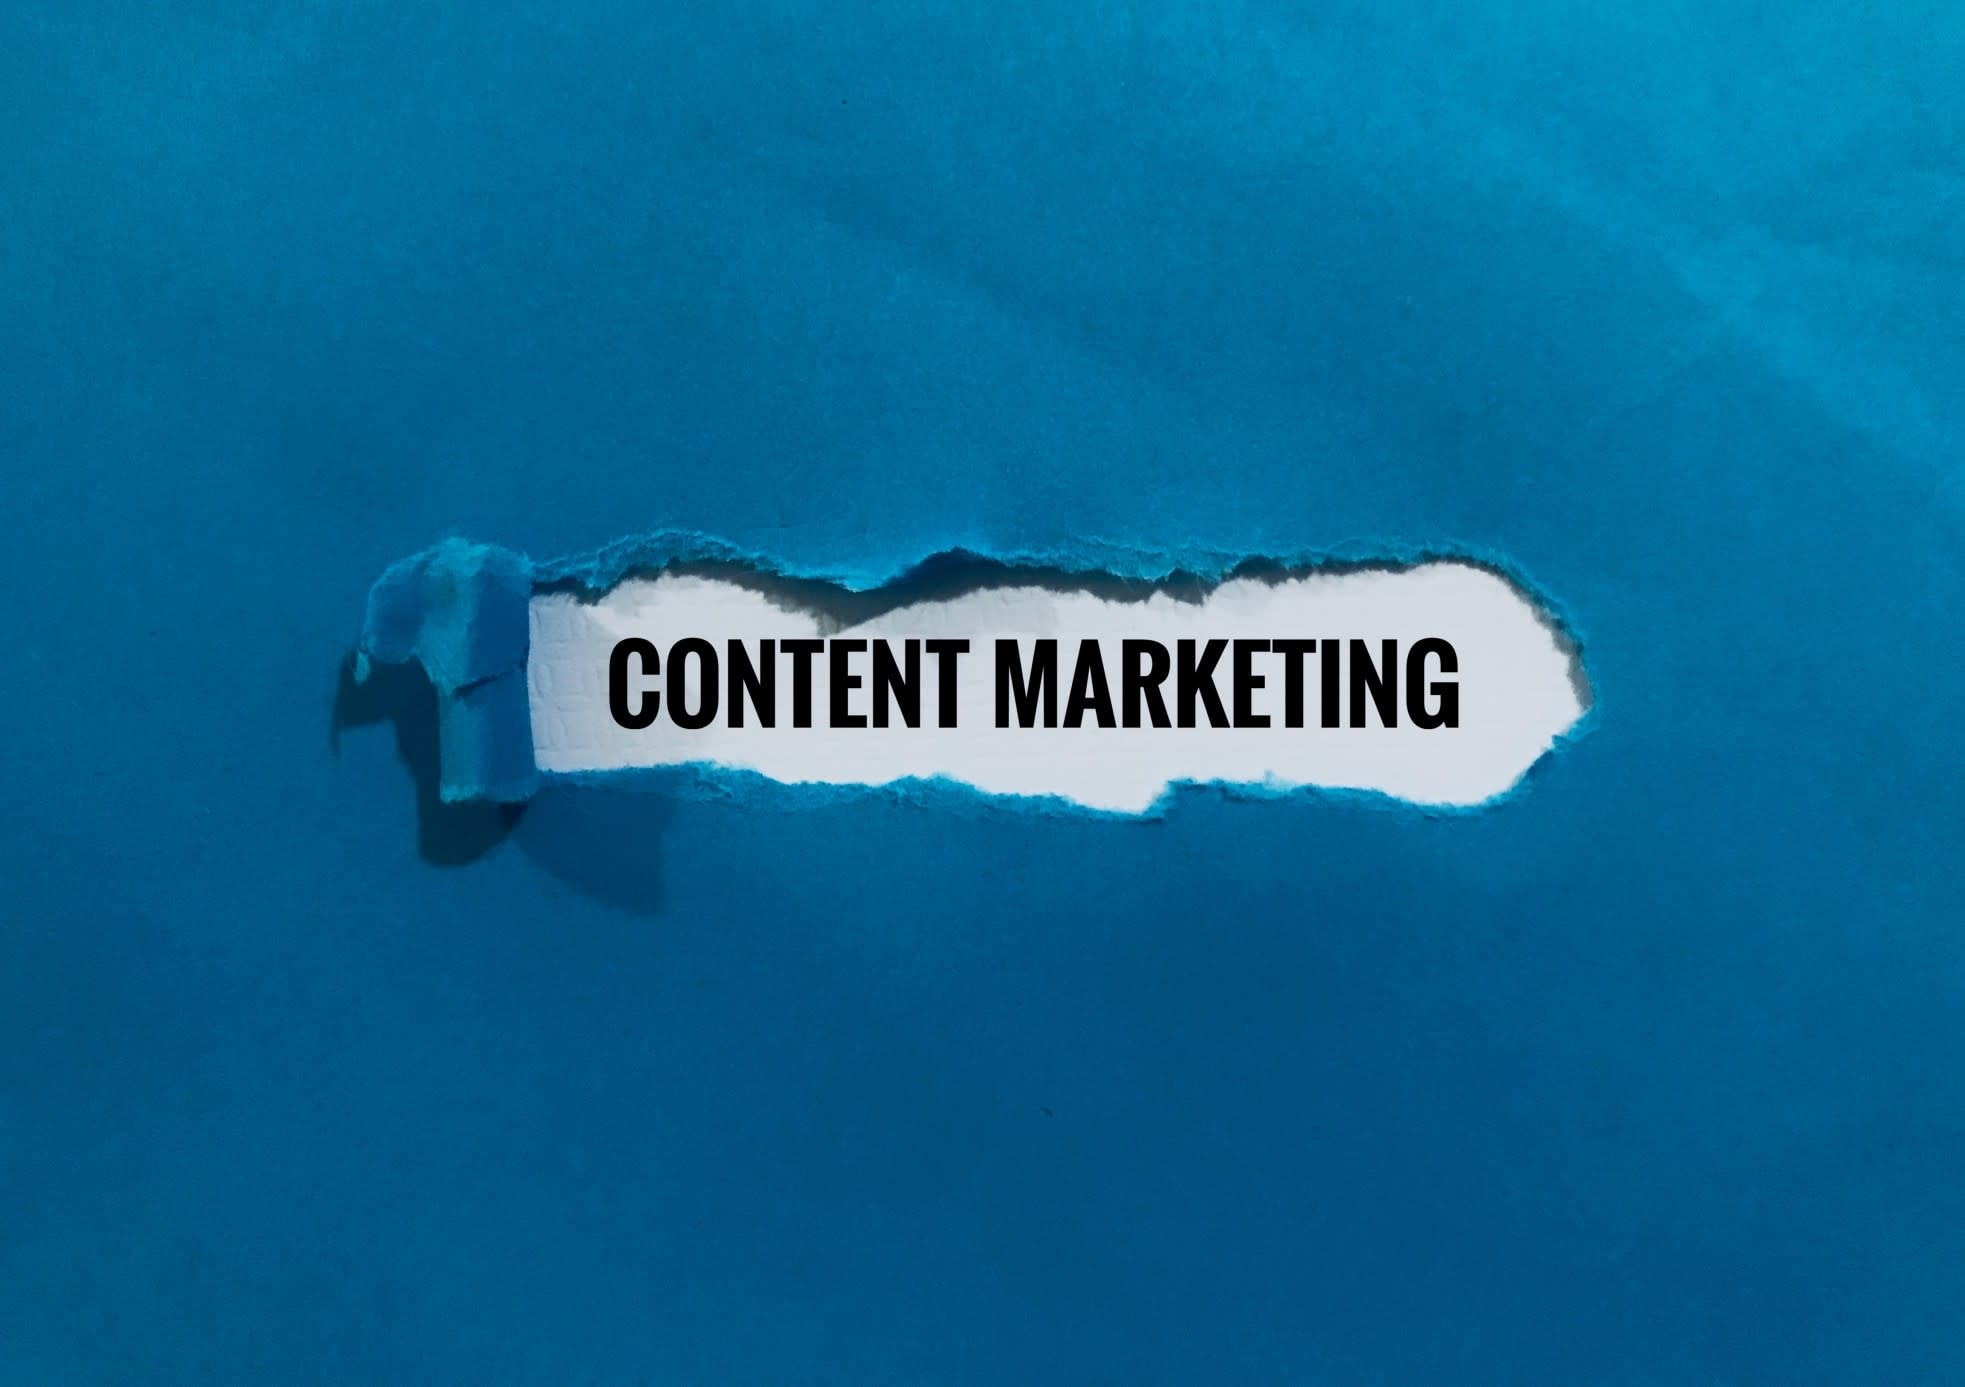 content marketing in a blue box